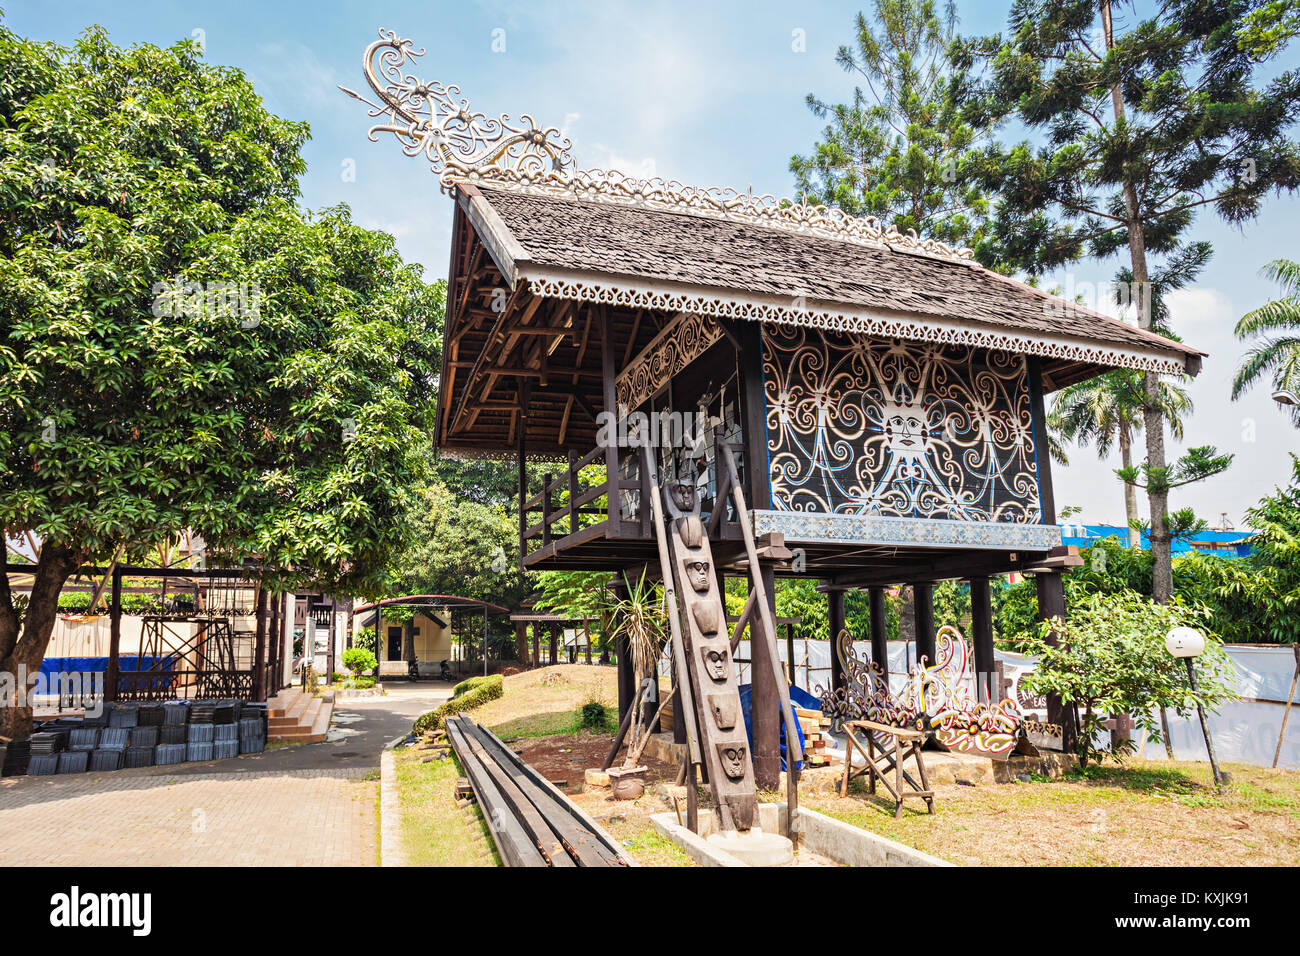 JAKARTA, INDONESIA - OCTOBER 20, 2014: Taman Mini Indonesia Indah is a culture based recreational area located in - Stock Image